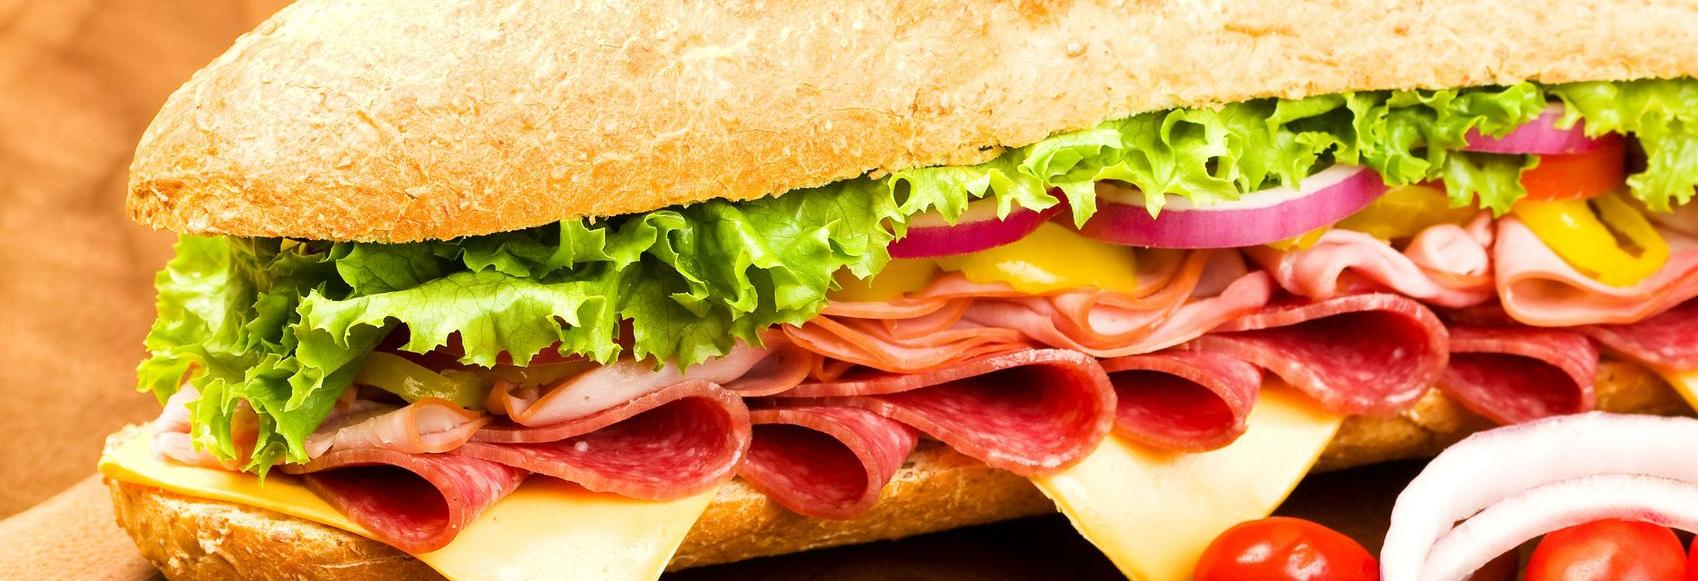 subs, meat, sandwich, lunch, dinner, snack